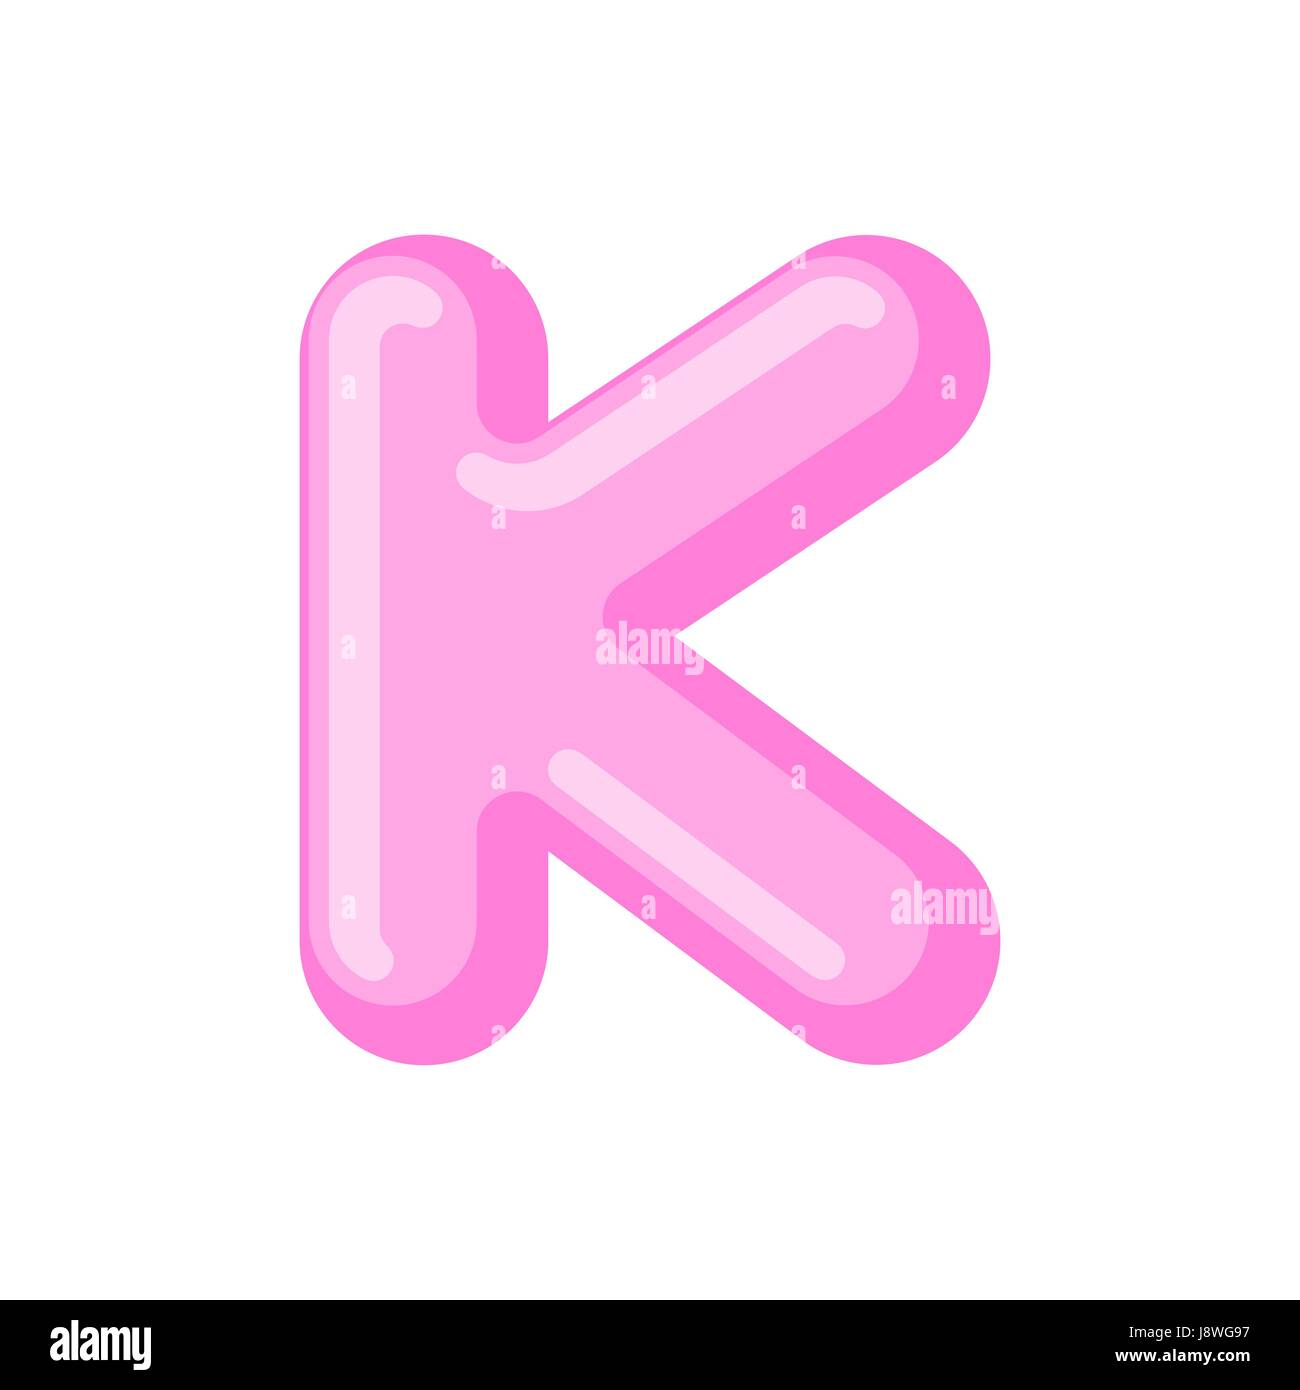 Letter K Food Stock Photos & Letter K Food Stock Images - Alamy